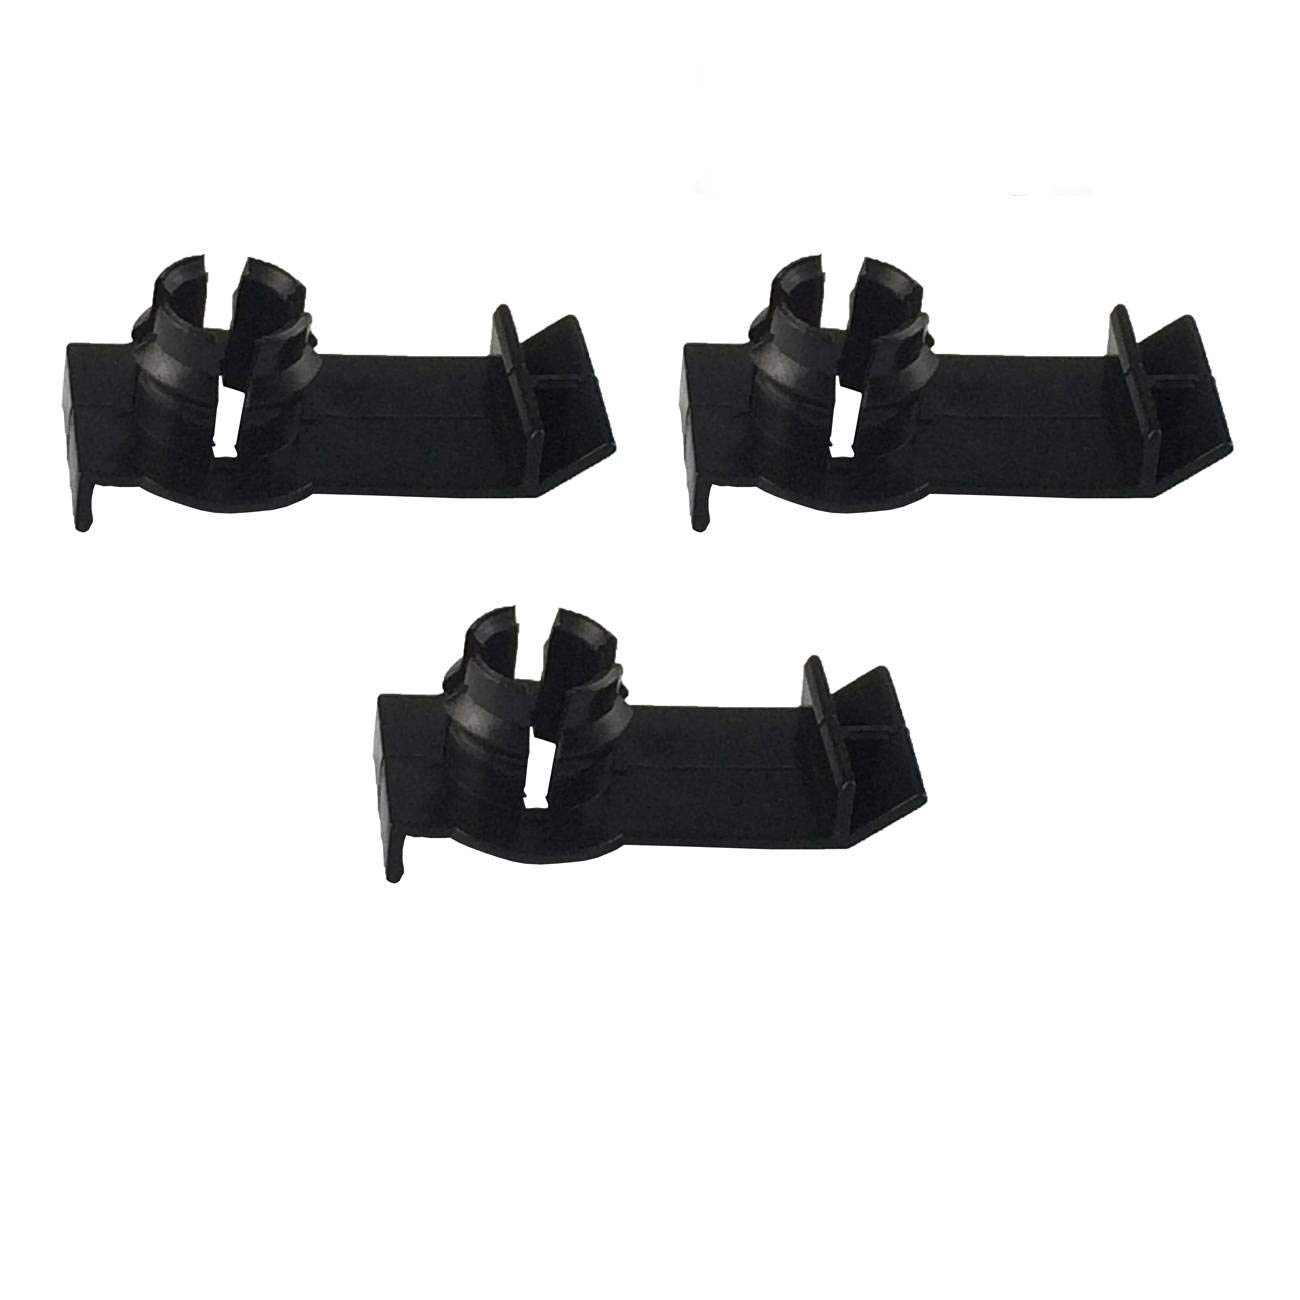 Black Friday Mgpro New 3pcs Front Window Regulator Clip For 2000-2006 BMW X5 4.8is 3.0i 4.4i 4.6is E53